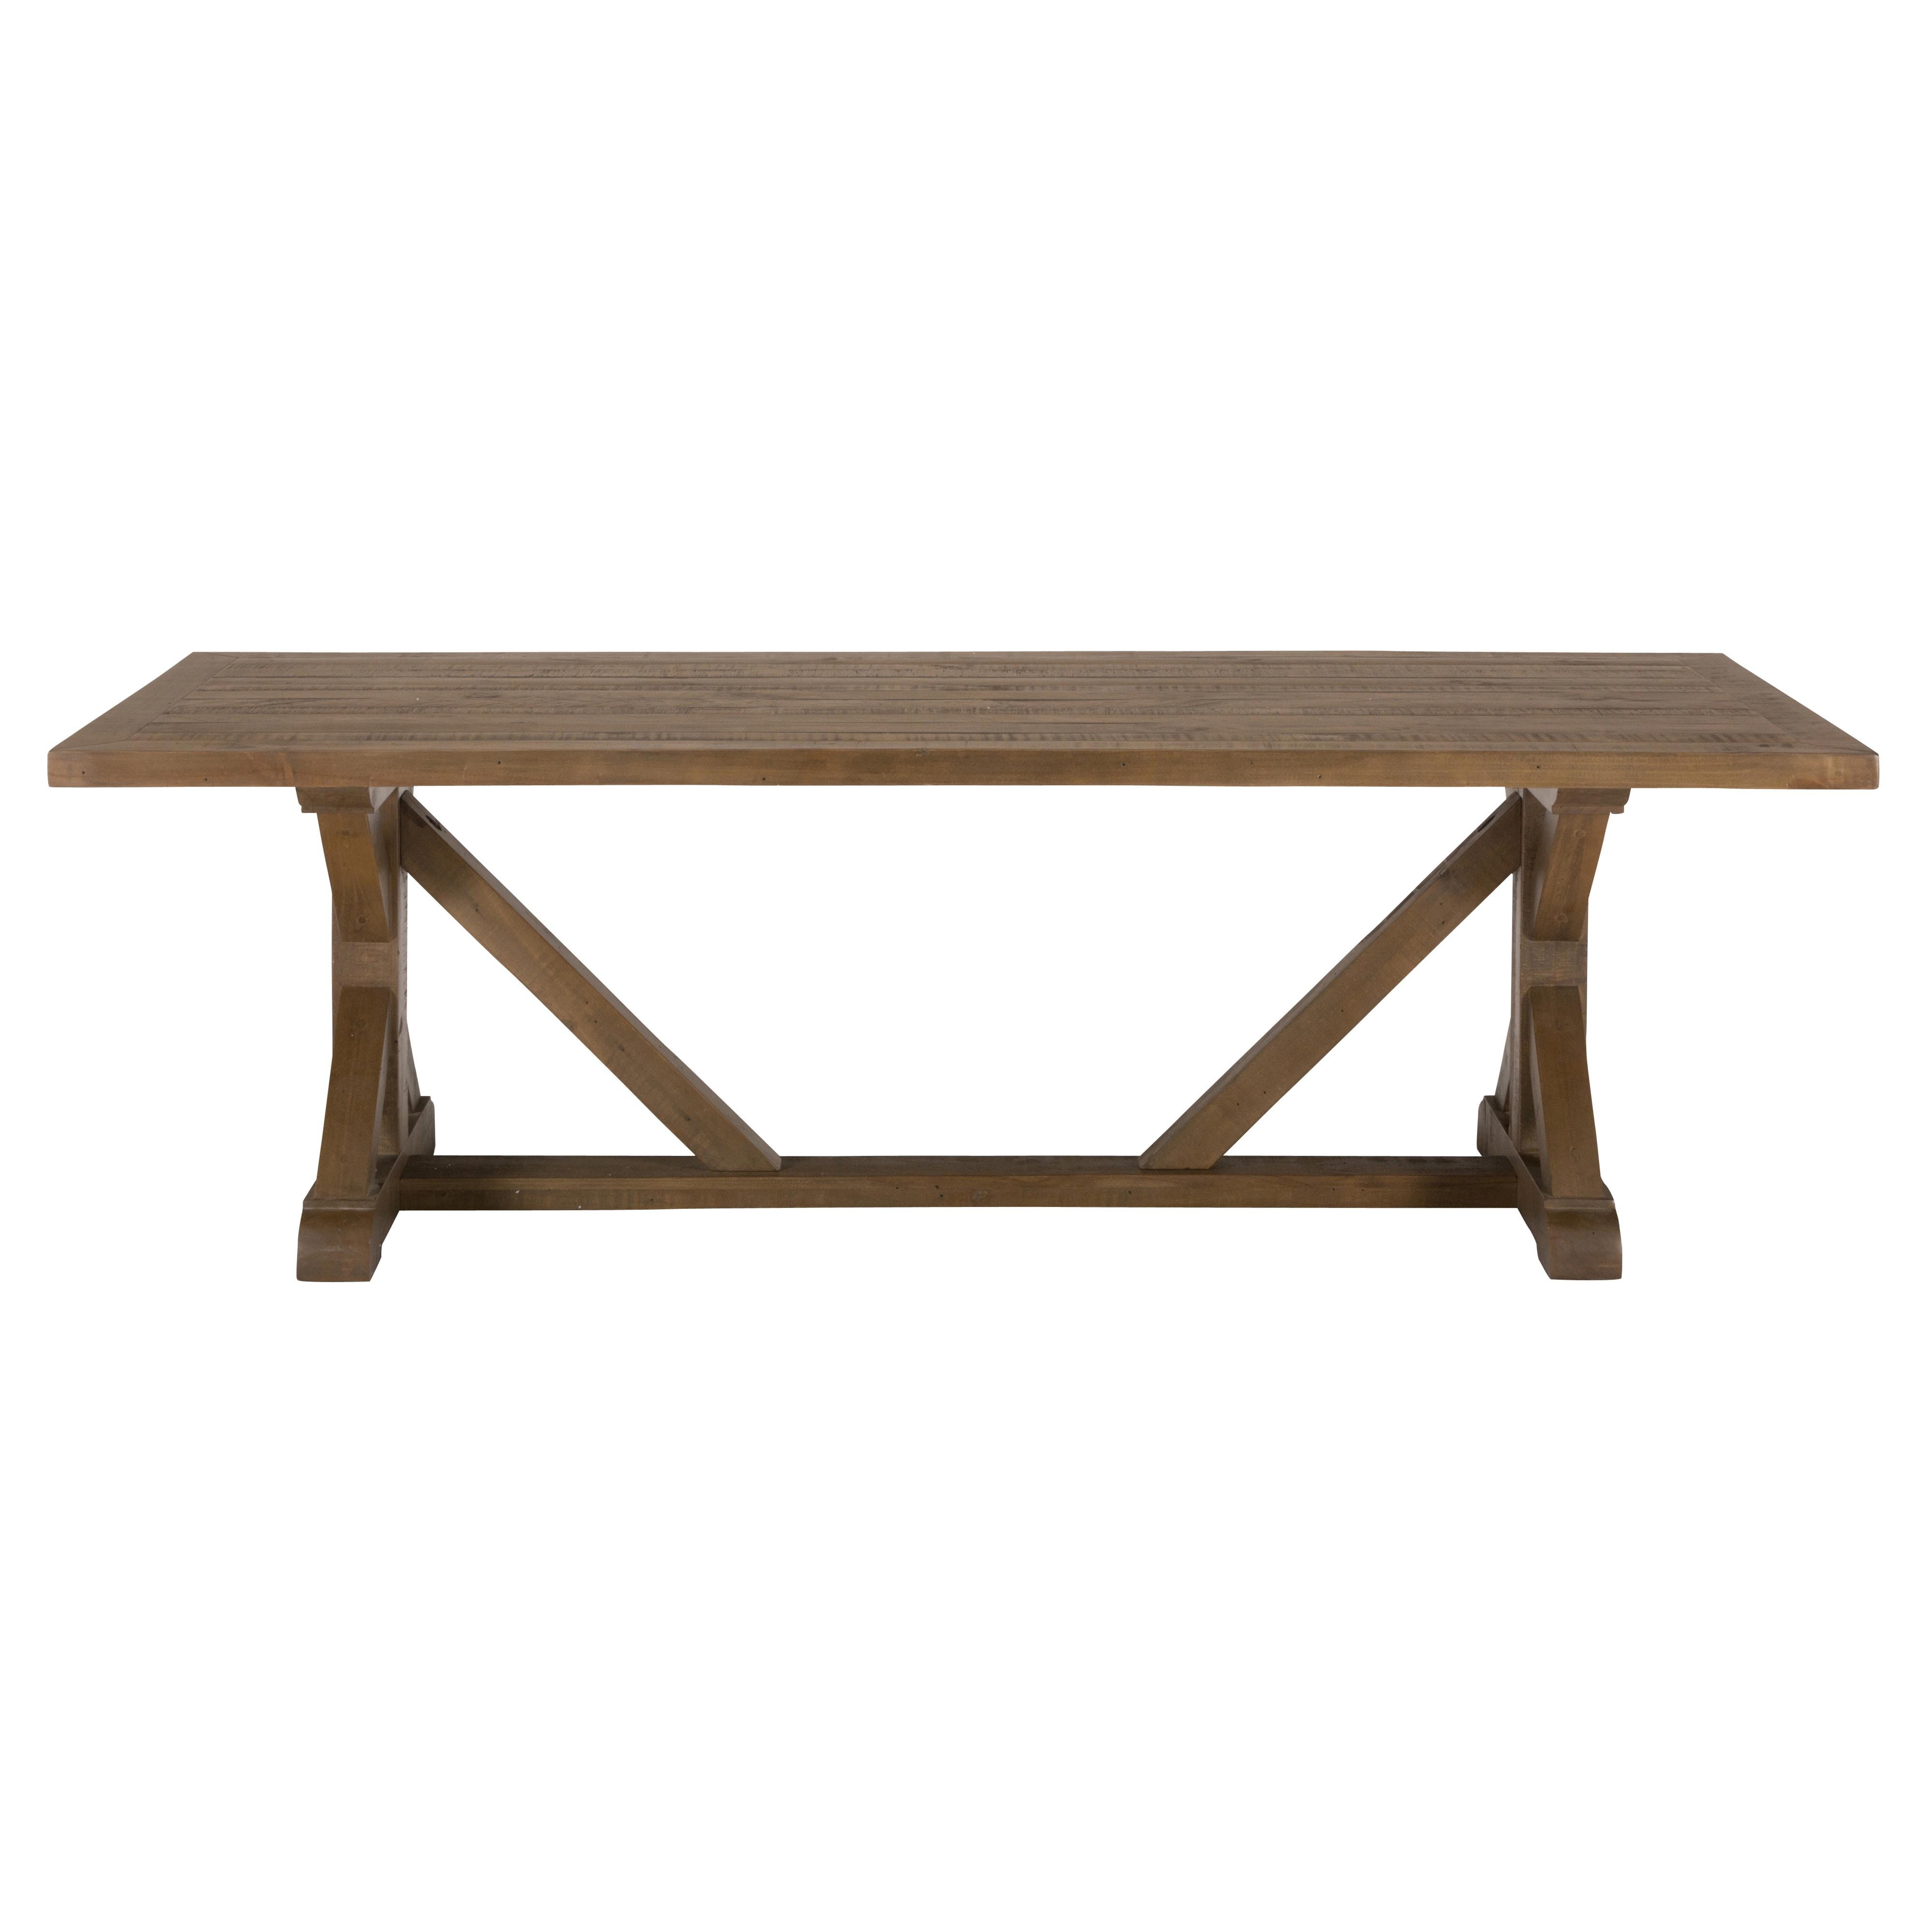 Jofran Slater Mill Pine Reclaimed Pine Trestle Dining Table   Item Number:  941 97